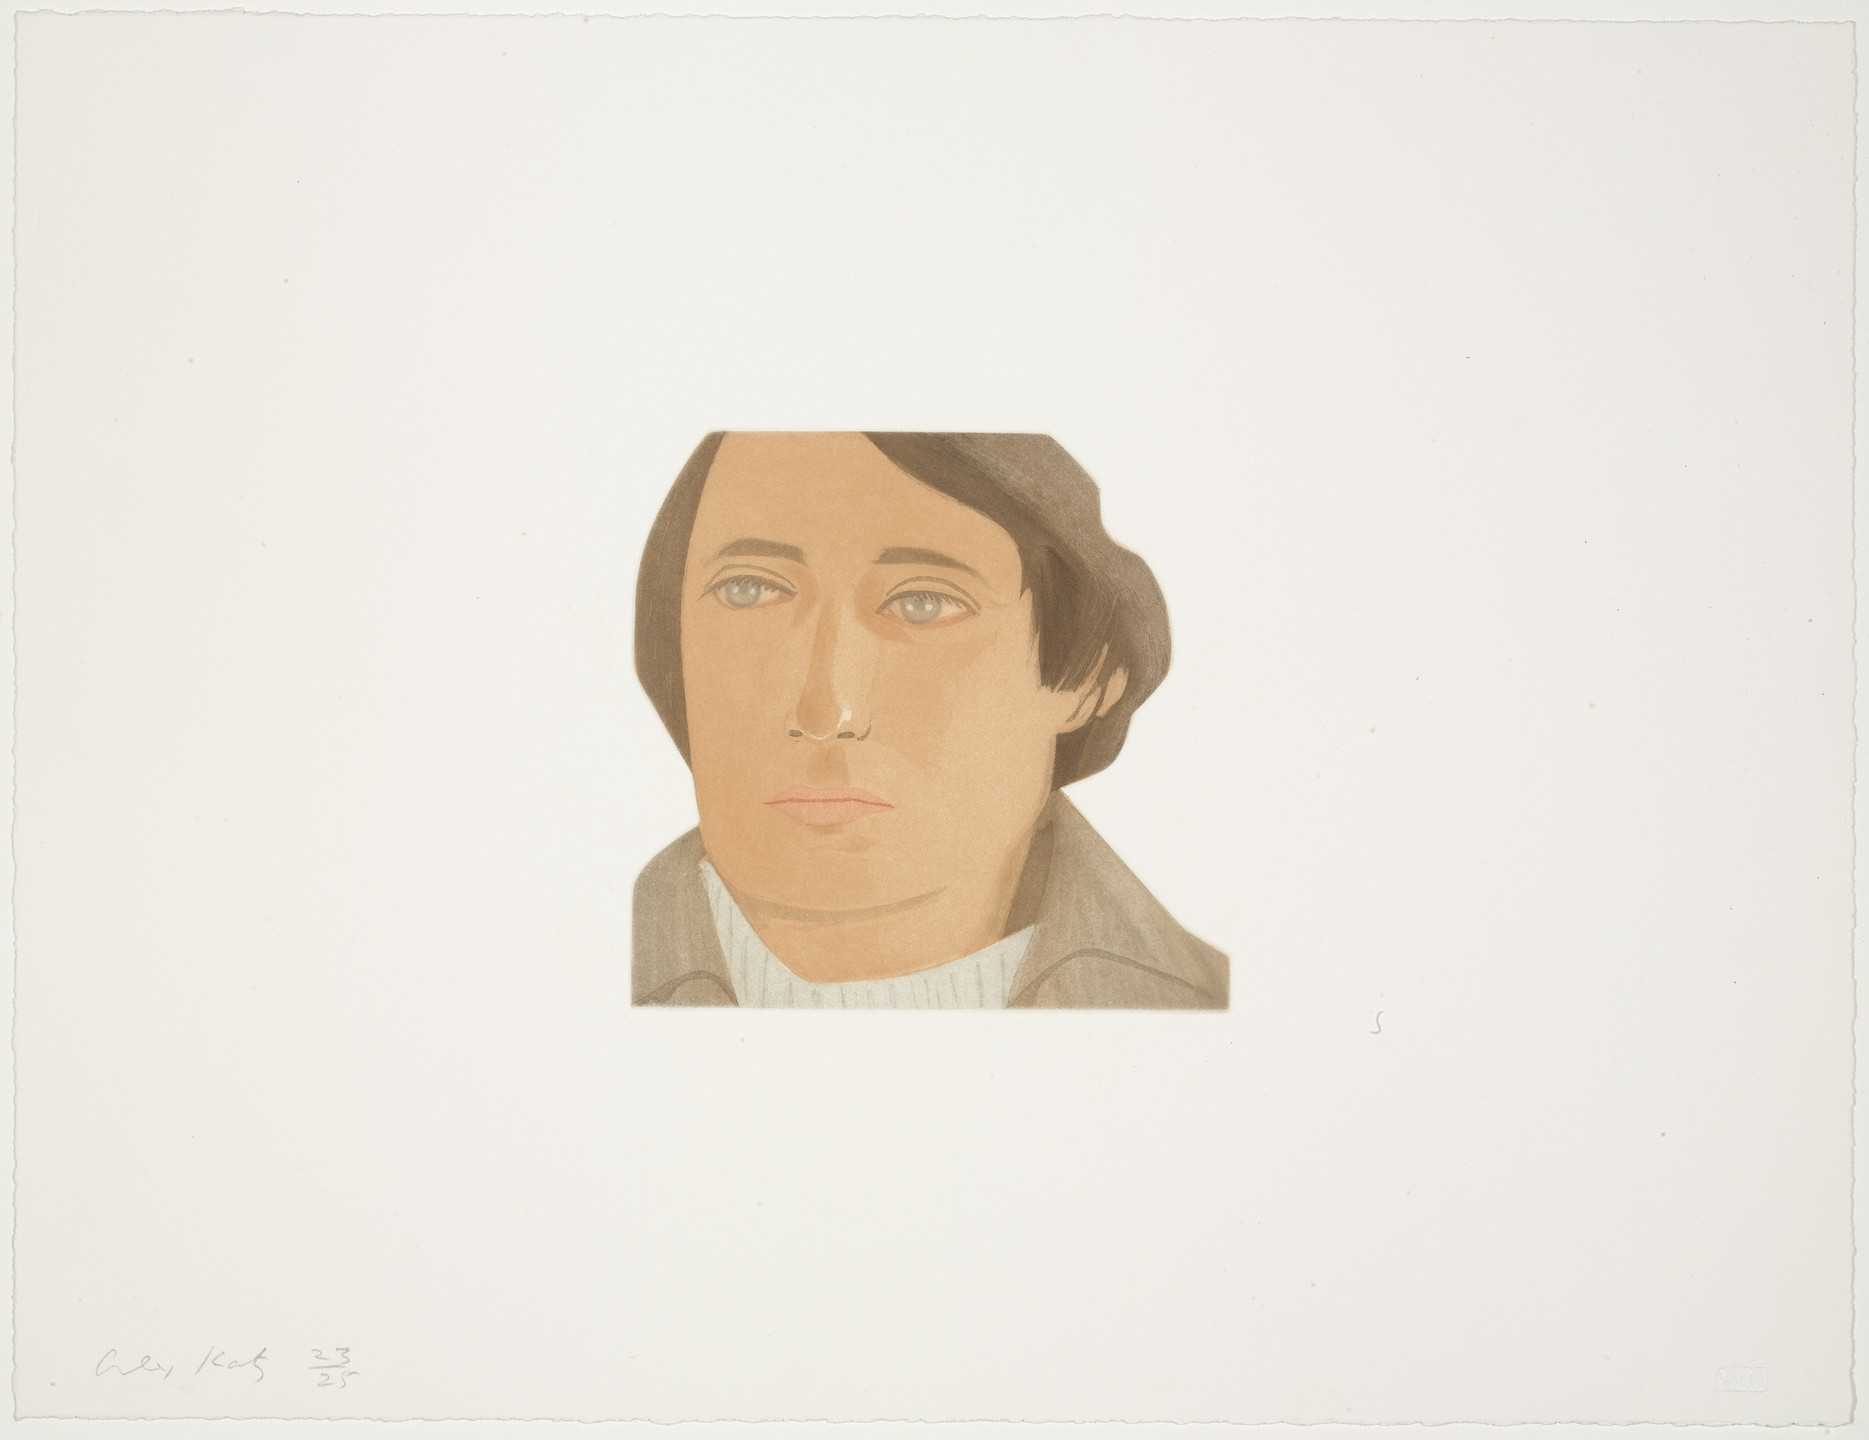 Alex Katz. Tony Towle from Face of the Poet. 1978